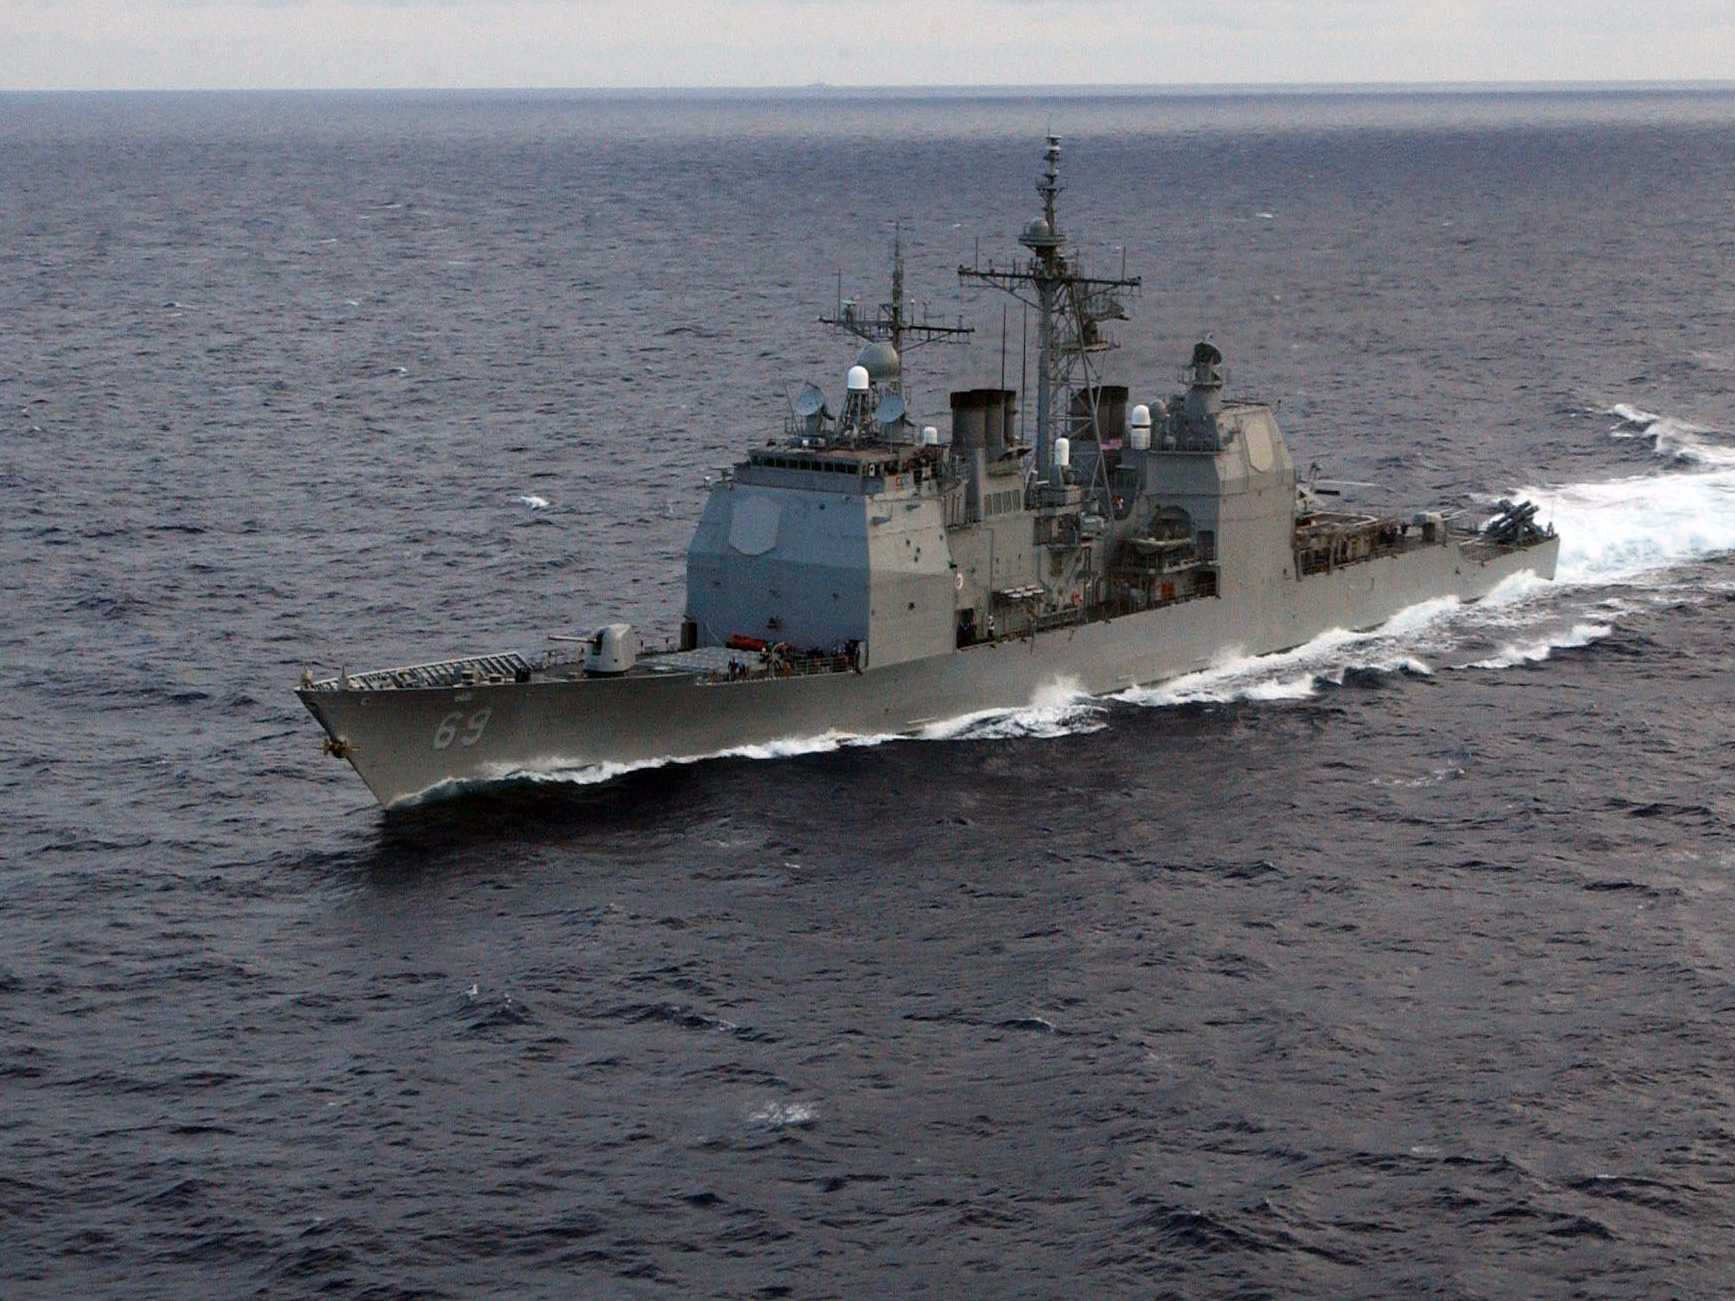 NATO military ships in the black sea - Business Insider